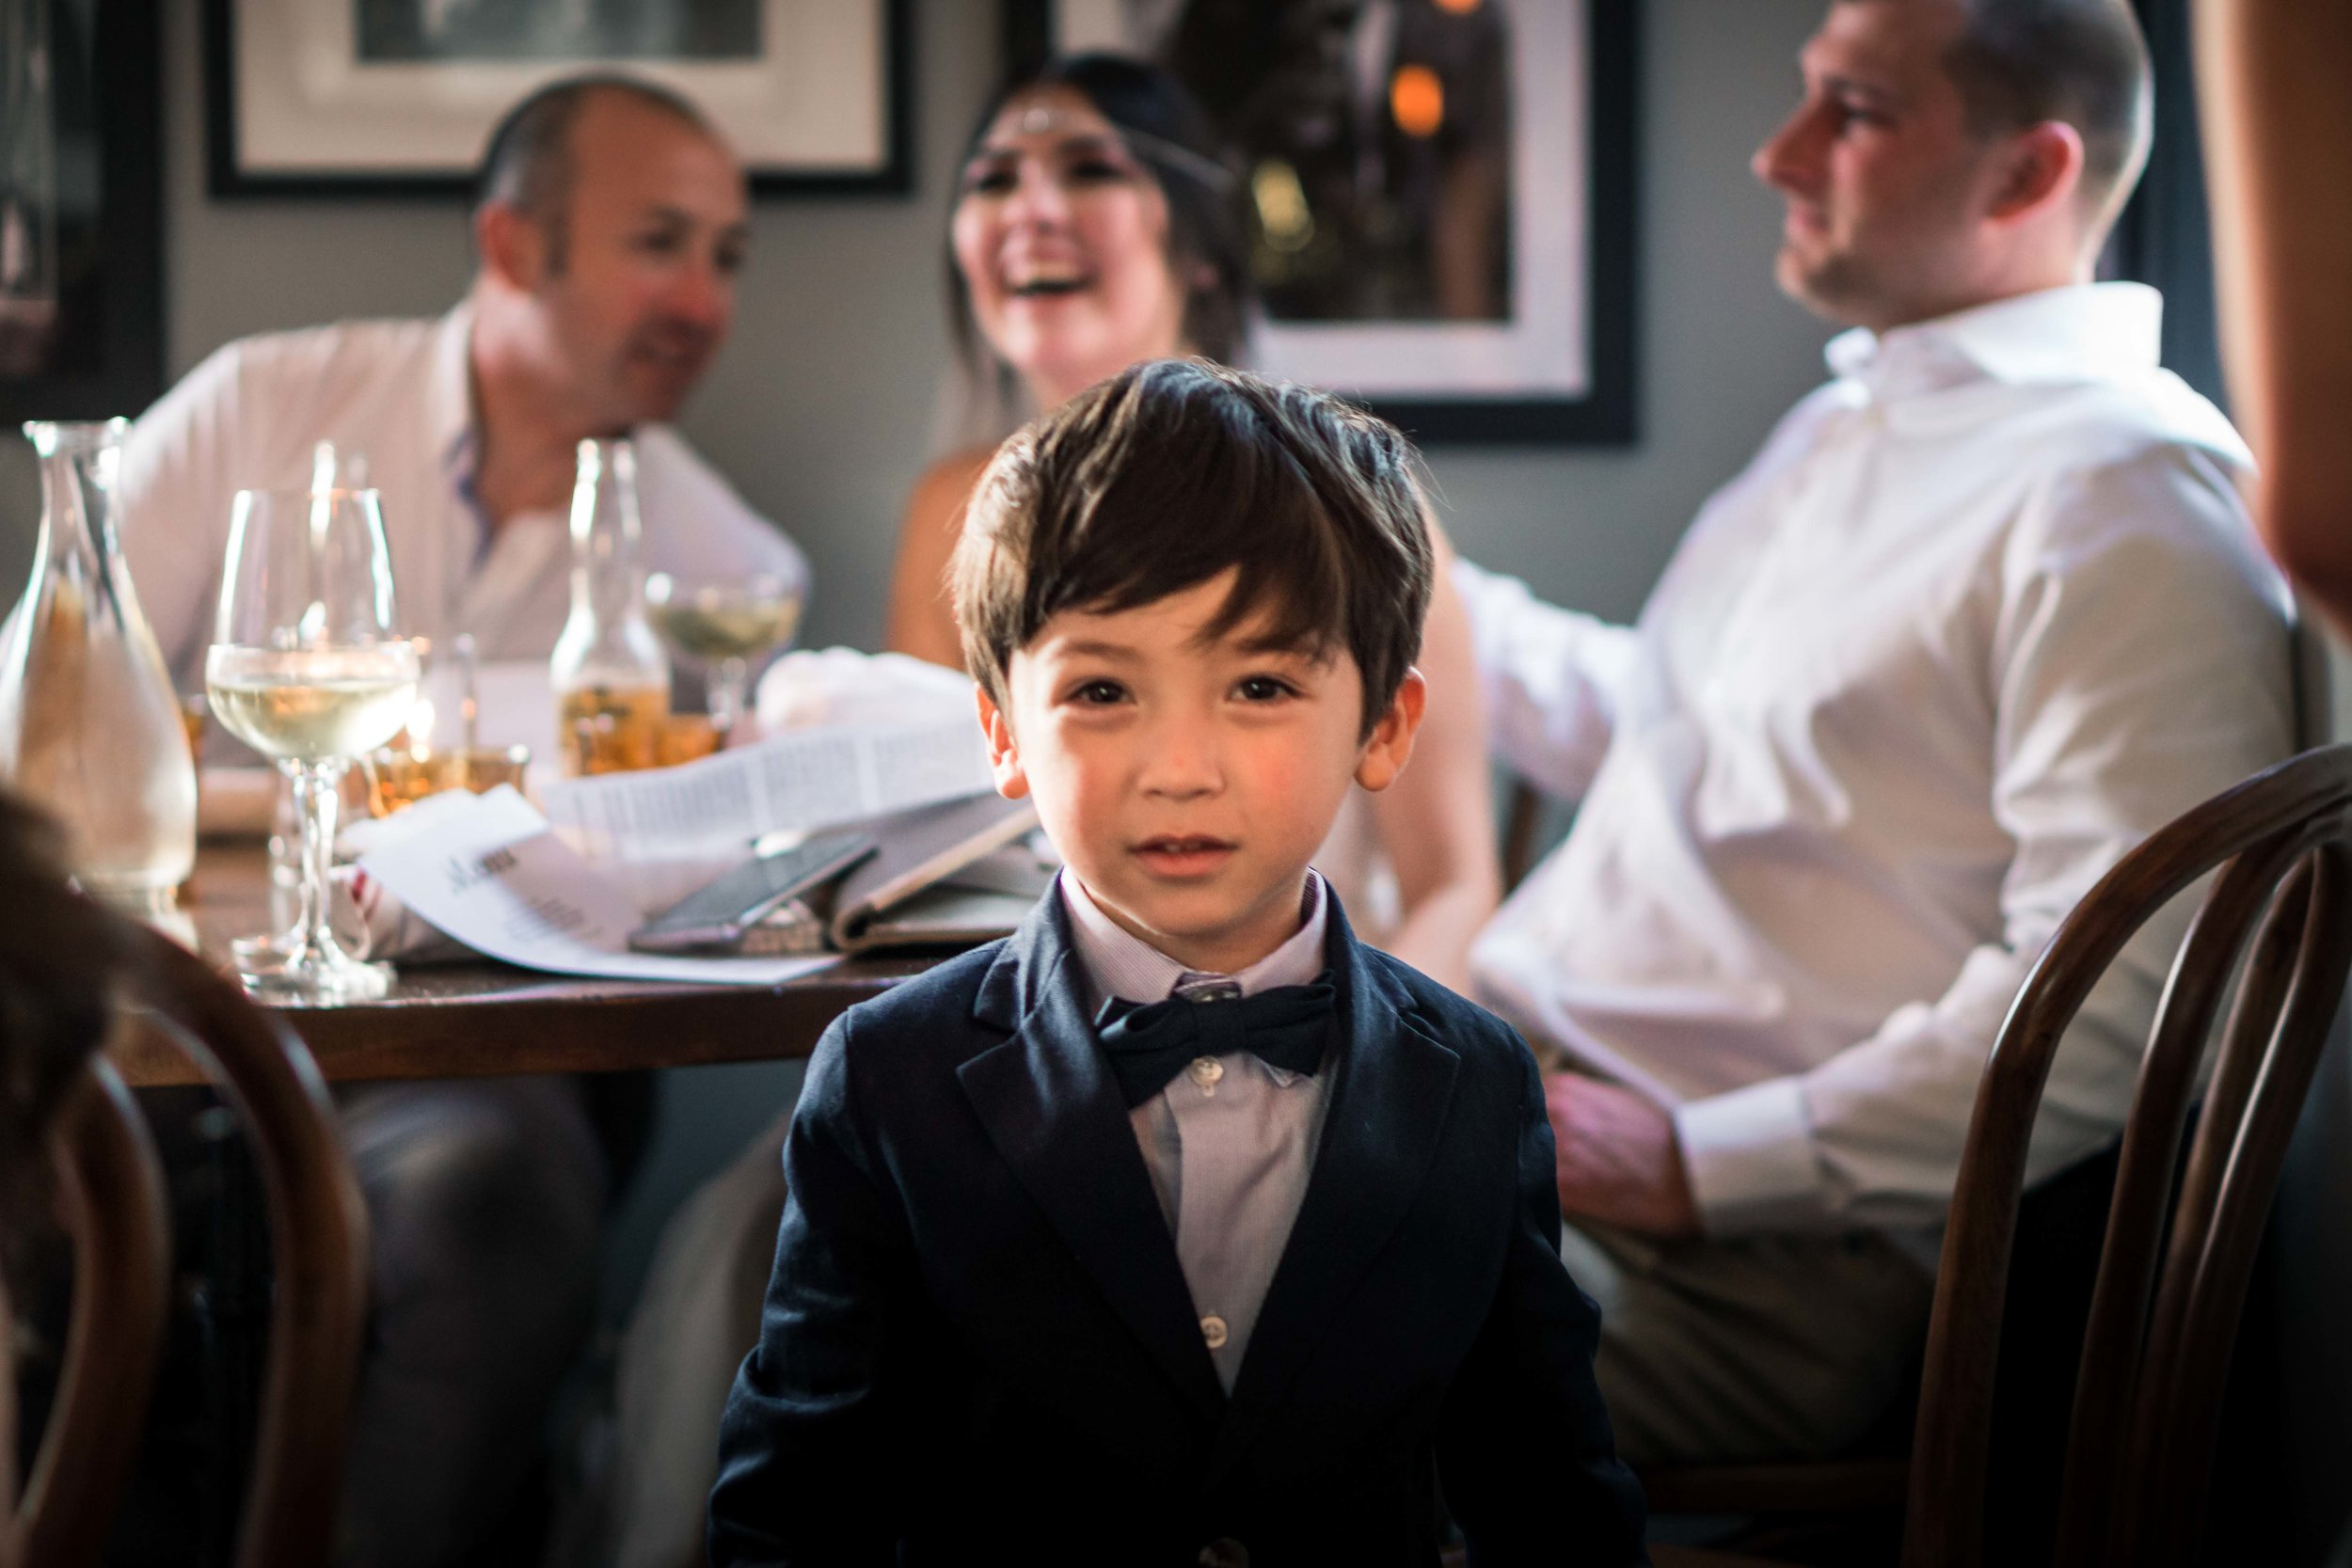 Cute photo of the ring bearer boy looking  At the camera